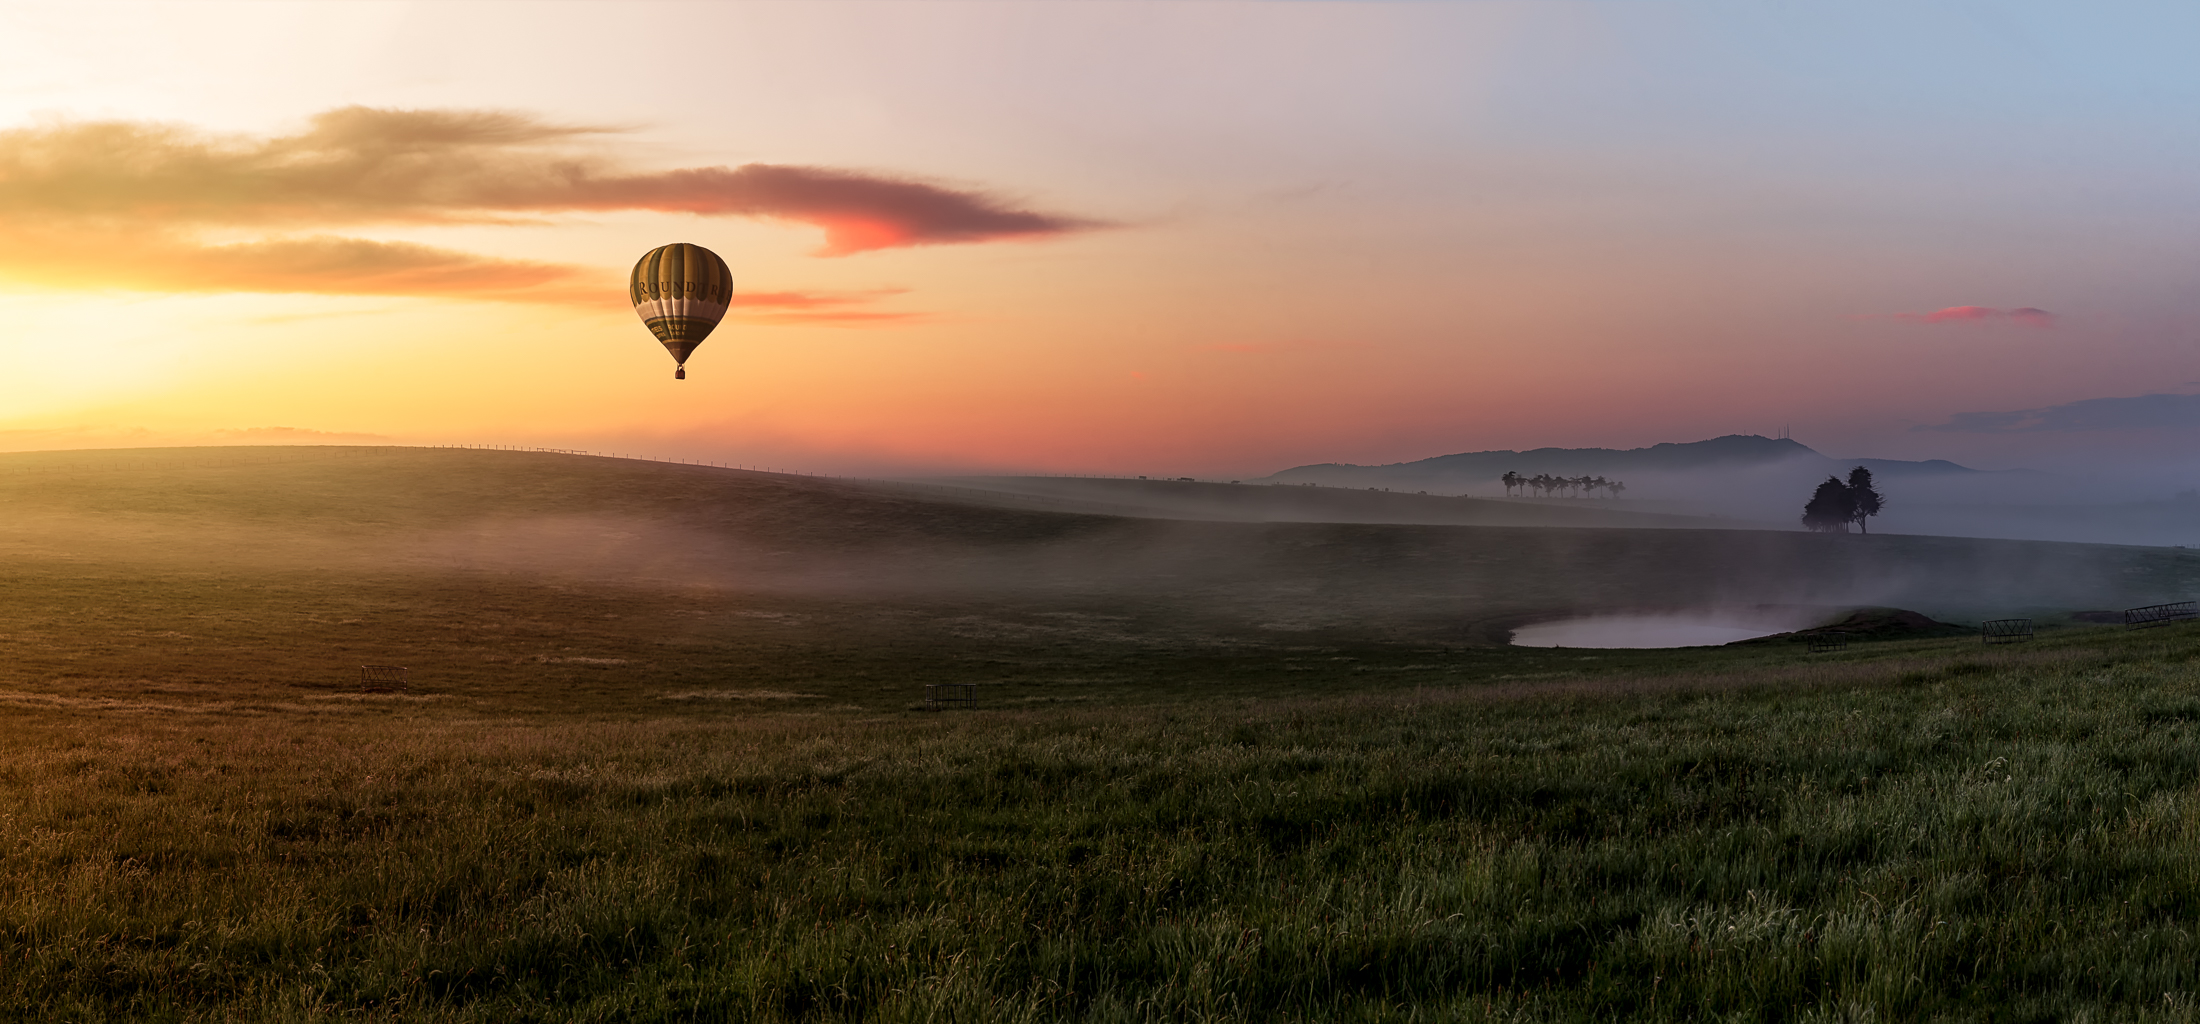 A sunrise during the hot air balloon festival in the Yarra Valley (Victoria, Australia) - Photo by Paul Tadday